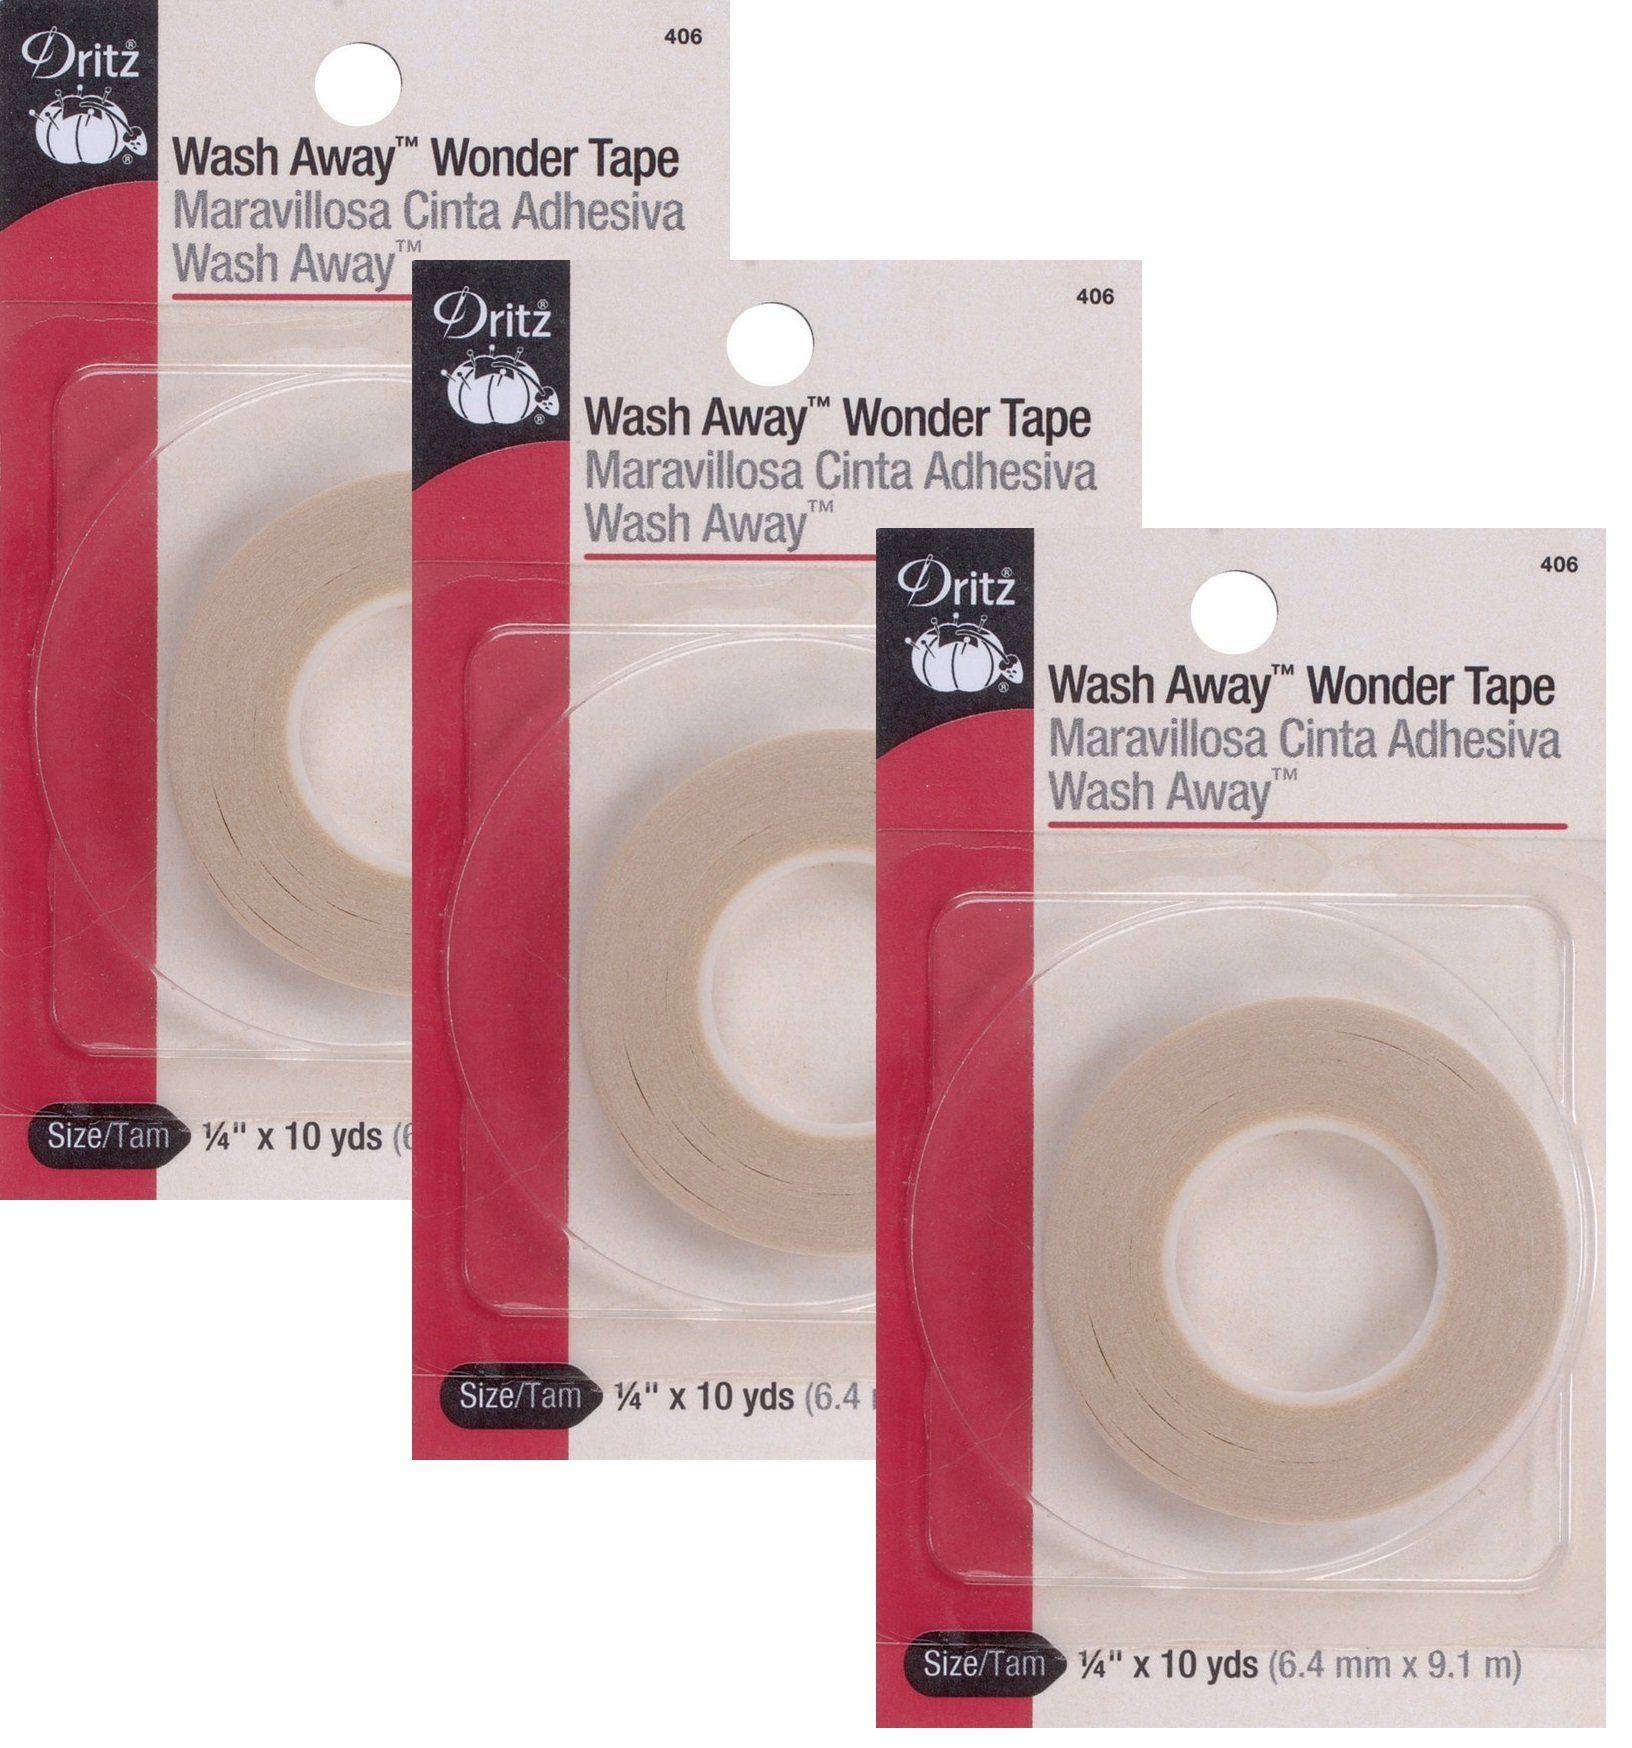 Dritz 406 1/4-Inch by 10-Yard Wash Away Wonder Tape (3 Pack) by Dritz